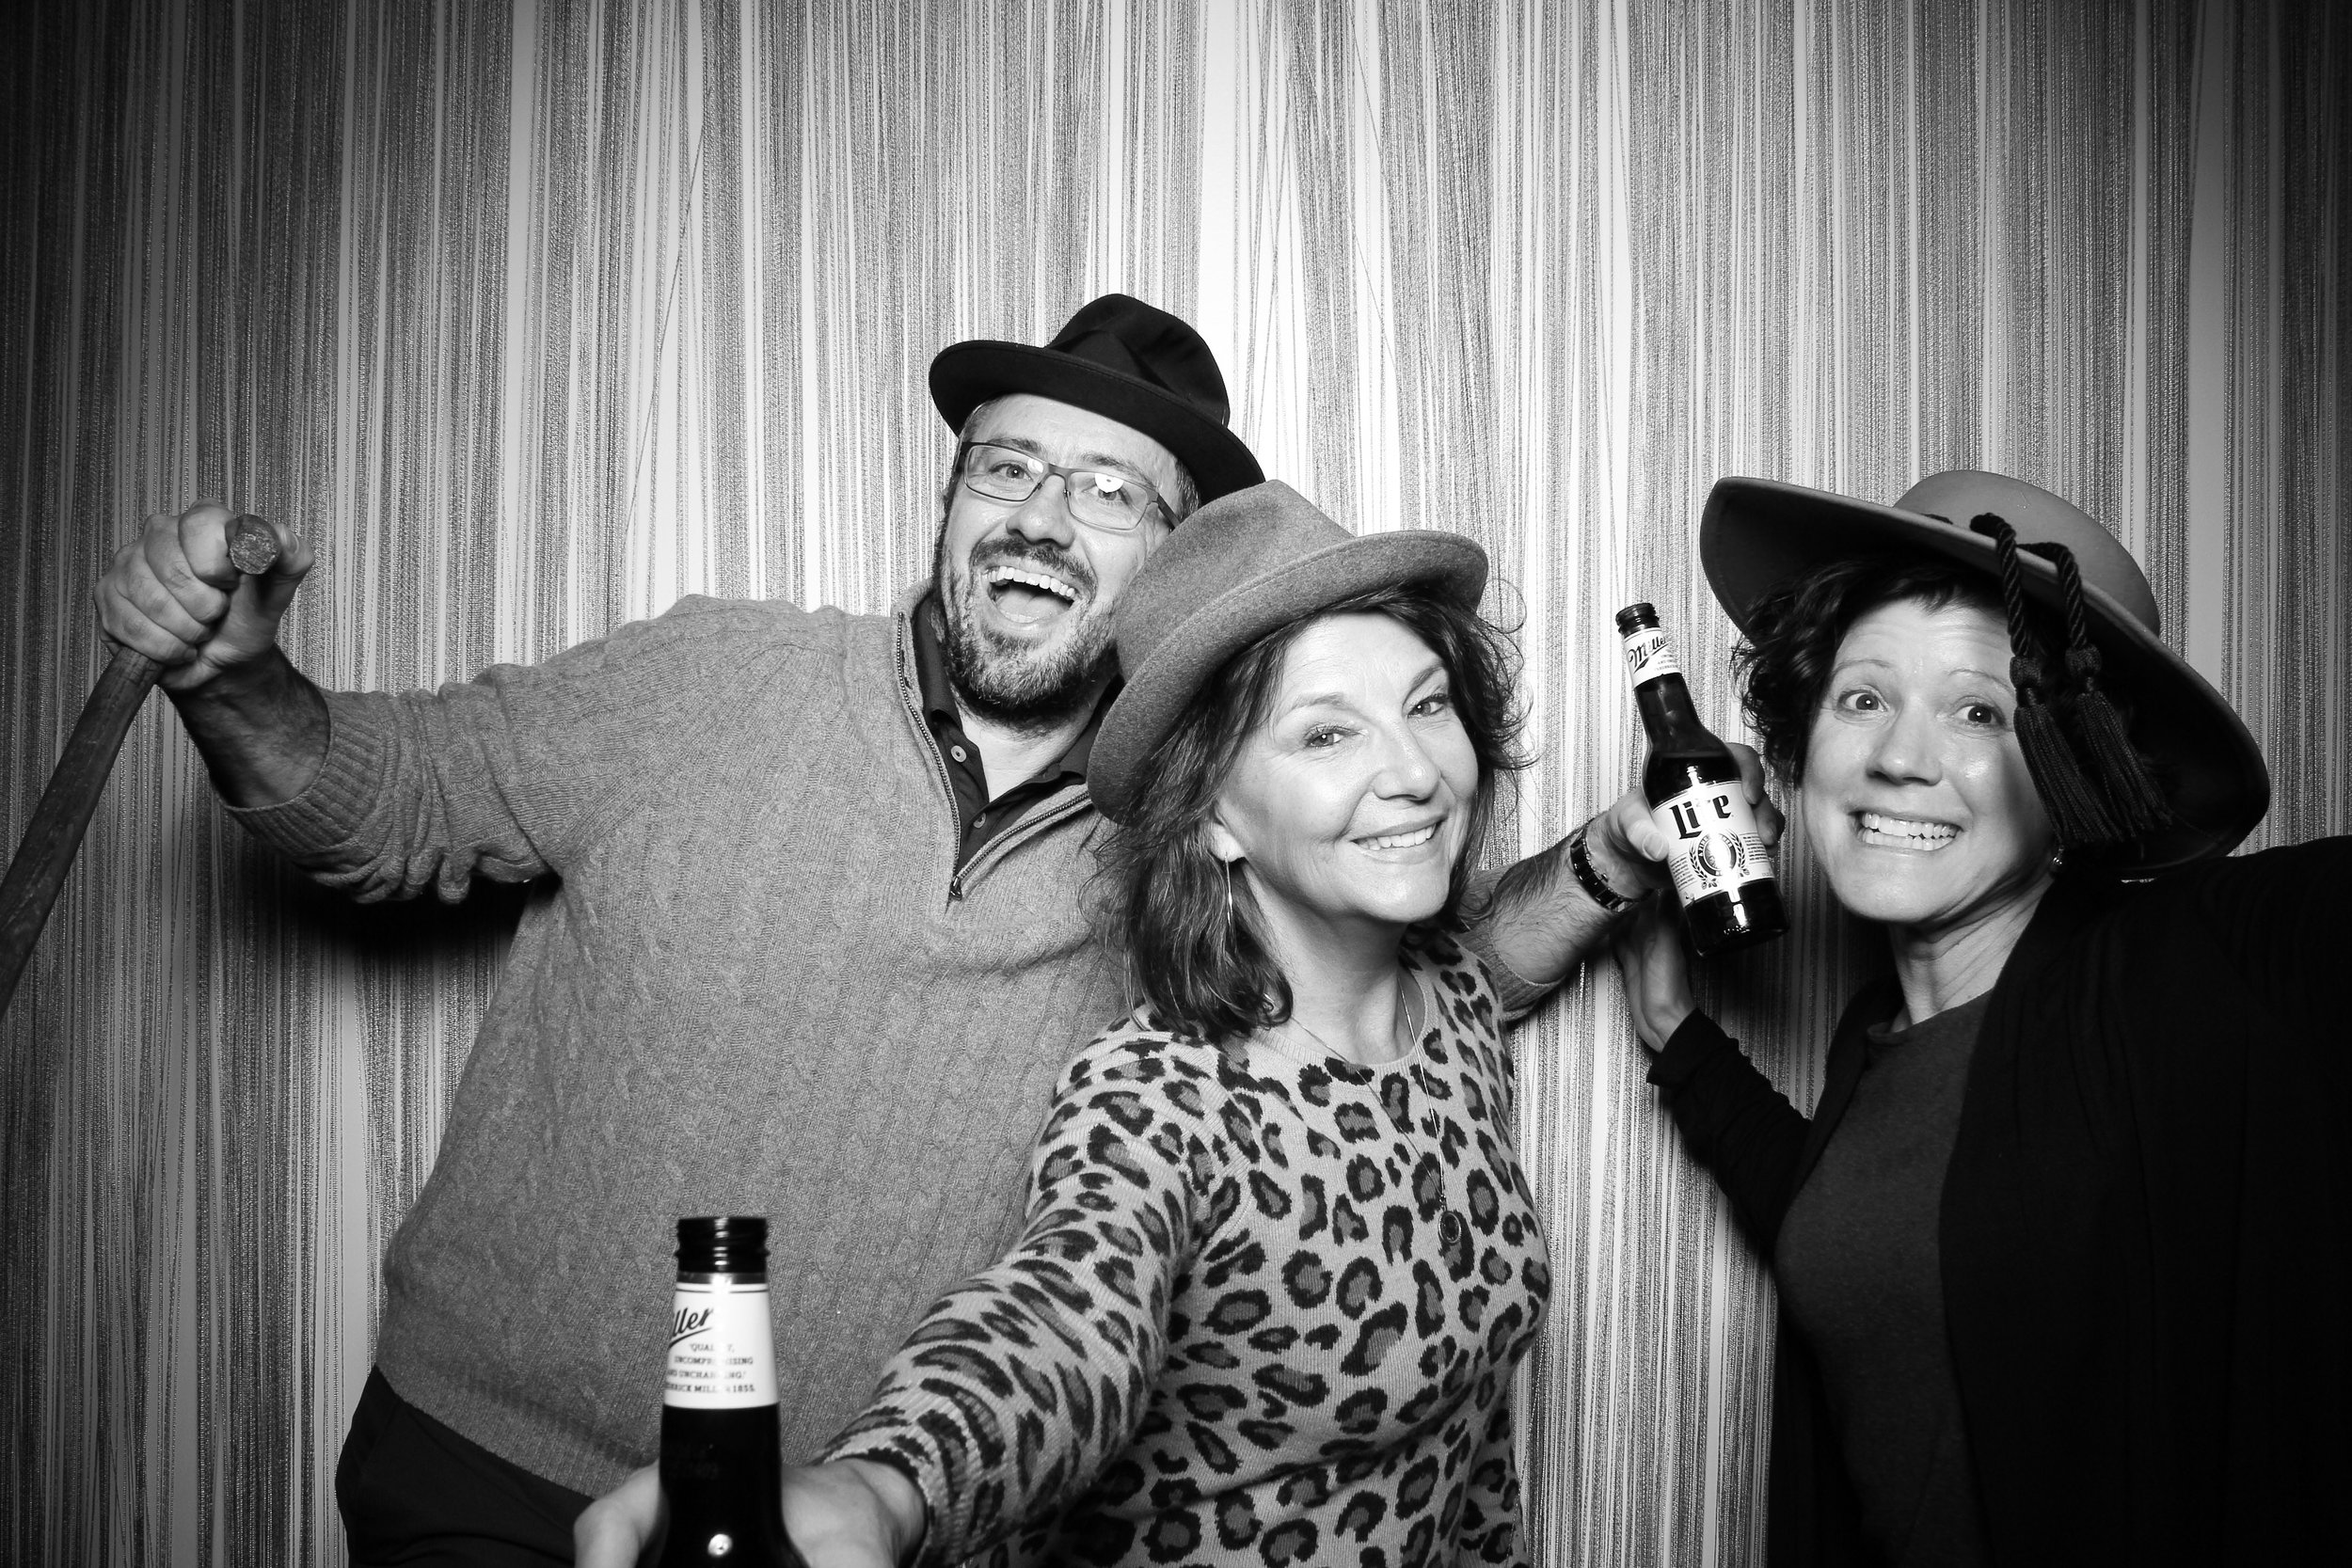 Chicago_Vintage_Photobooth_Holiday_Party_Wit_Hotel_17.jpg